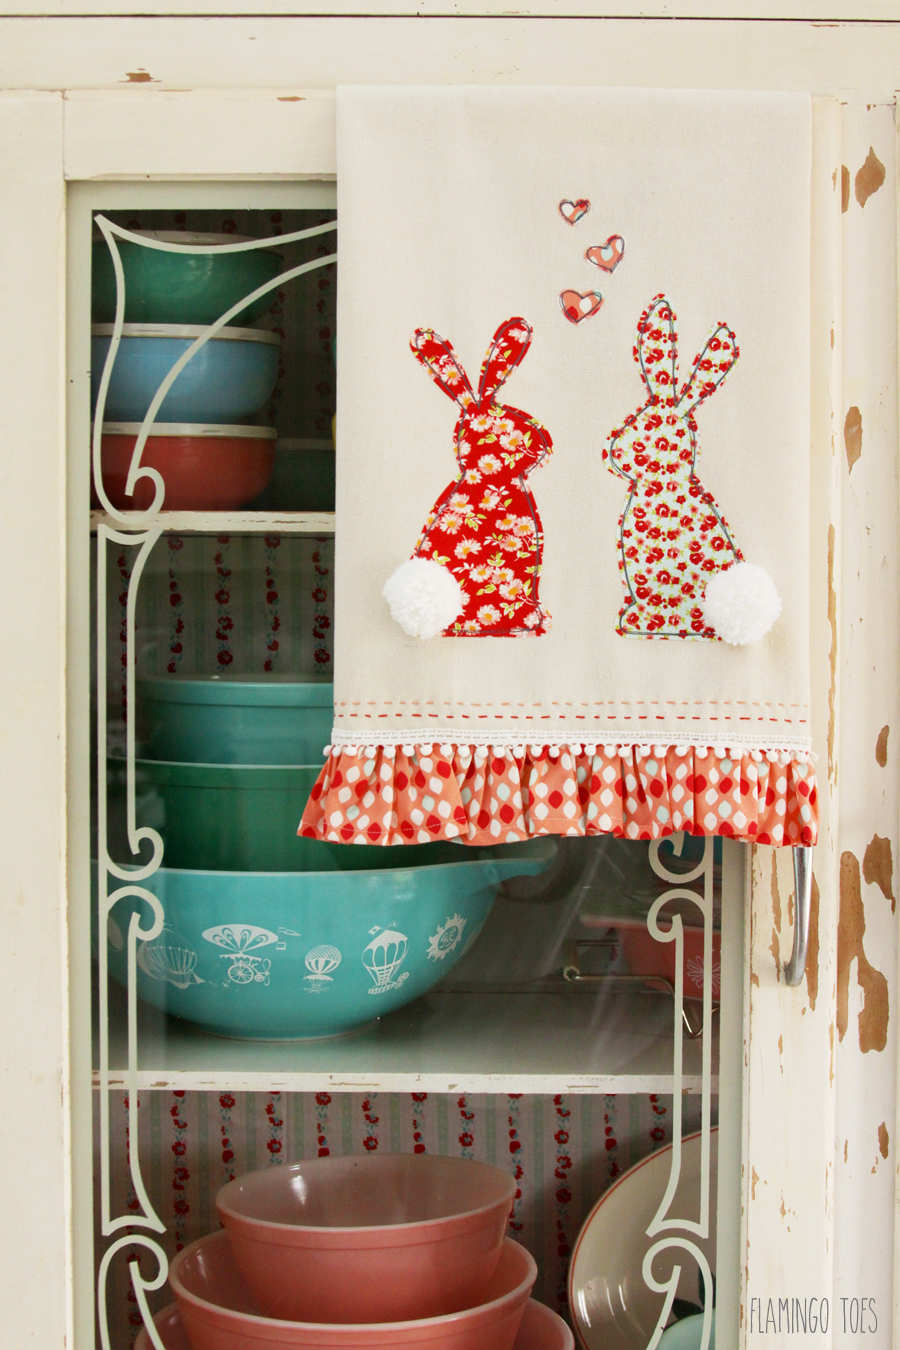 Retro Bunny Towel {Inspiration Monday Feature}